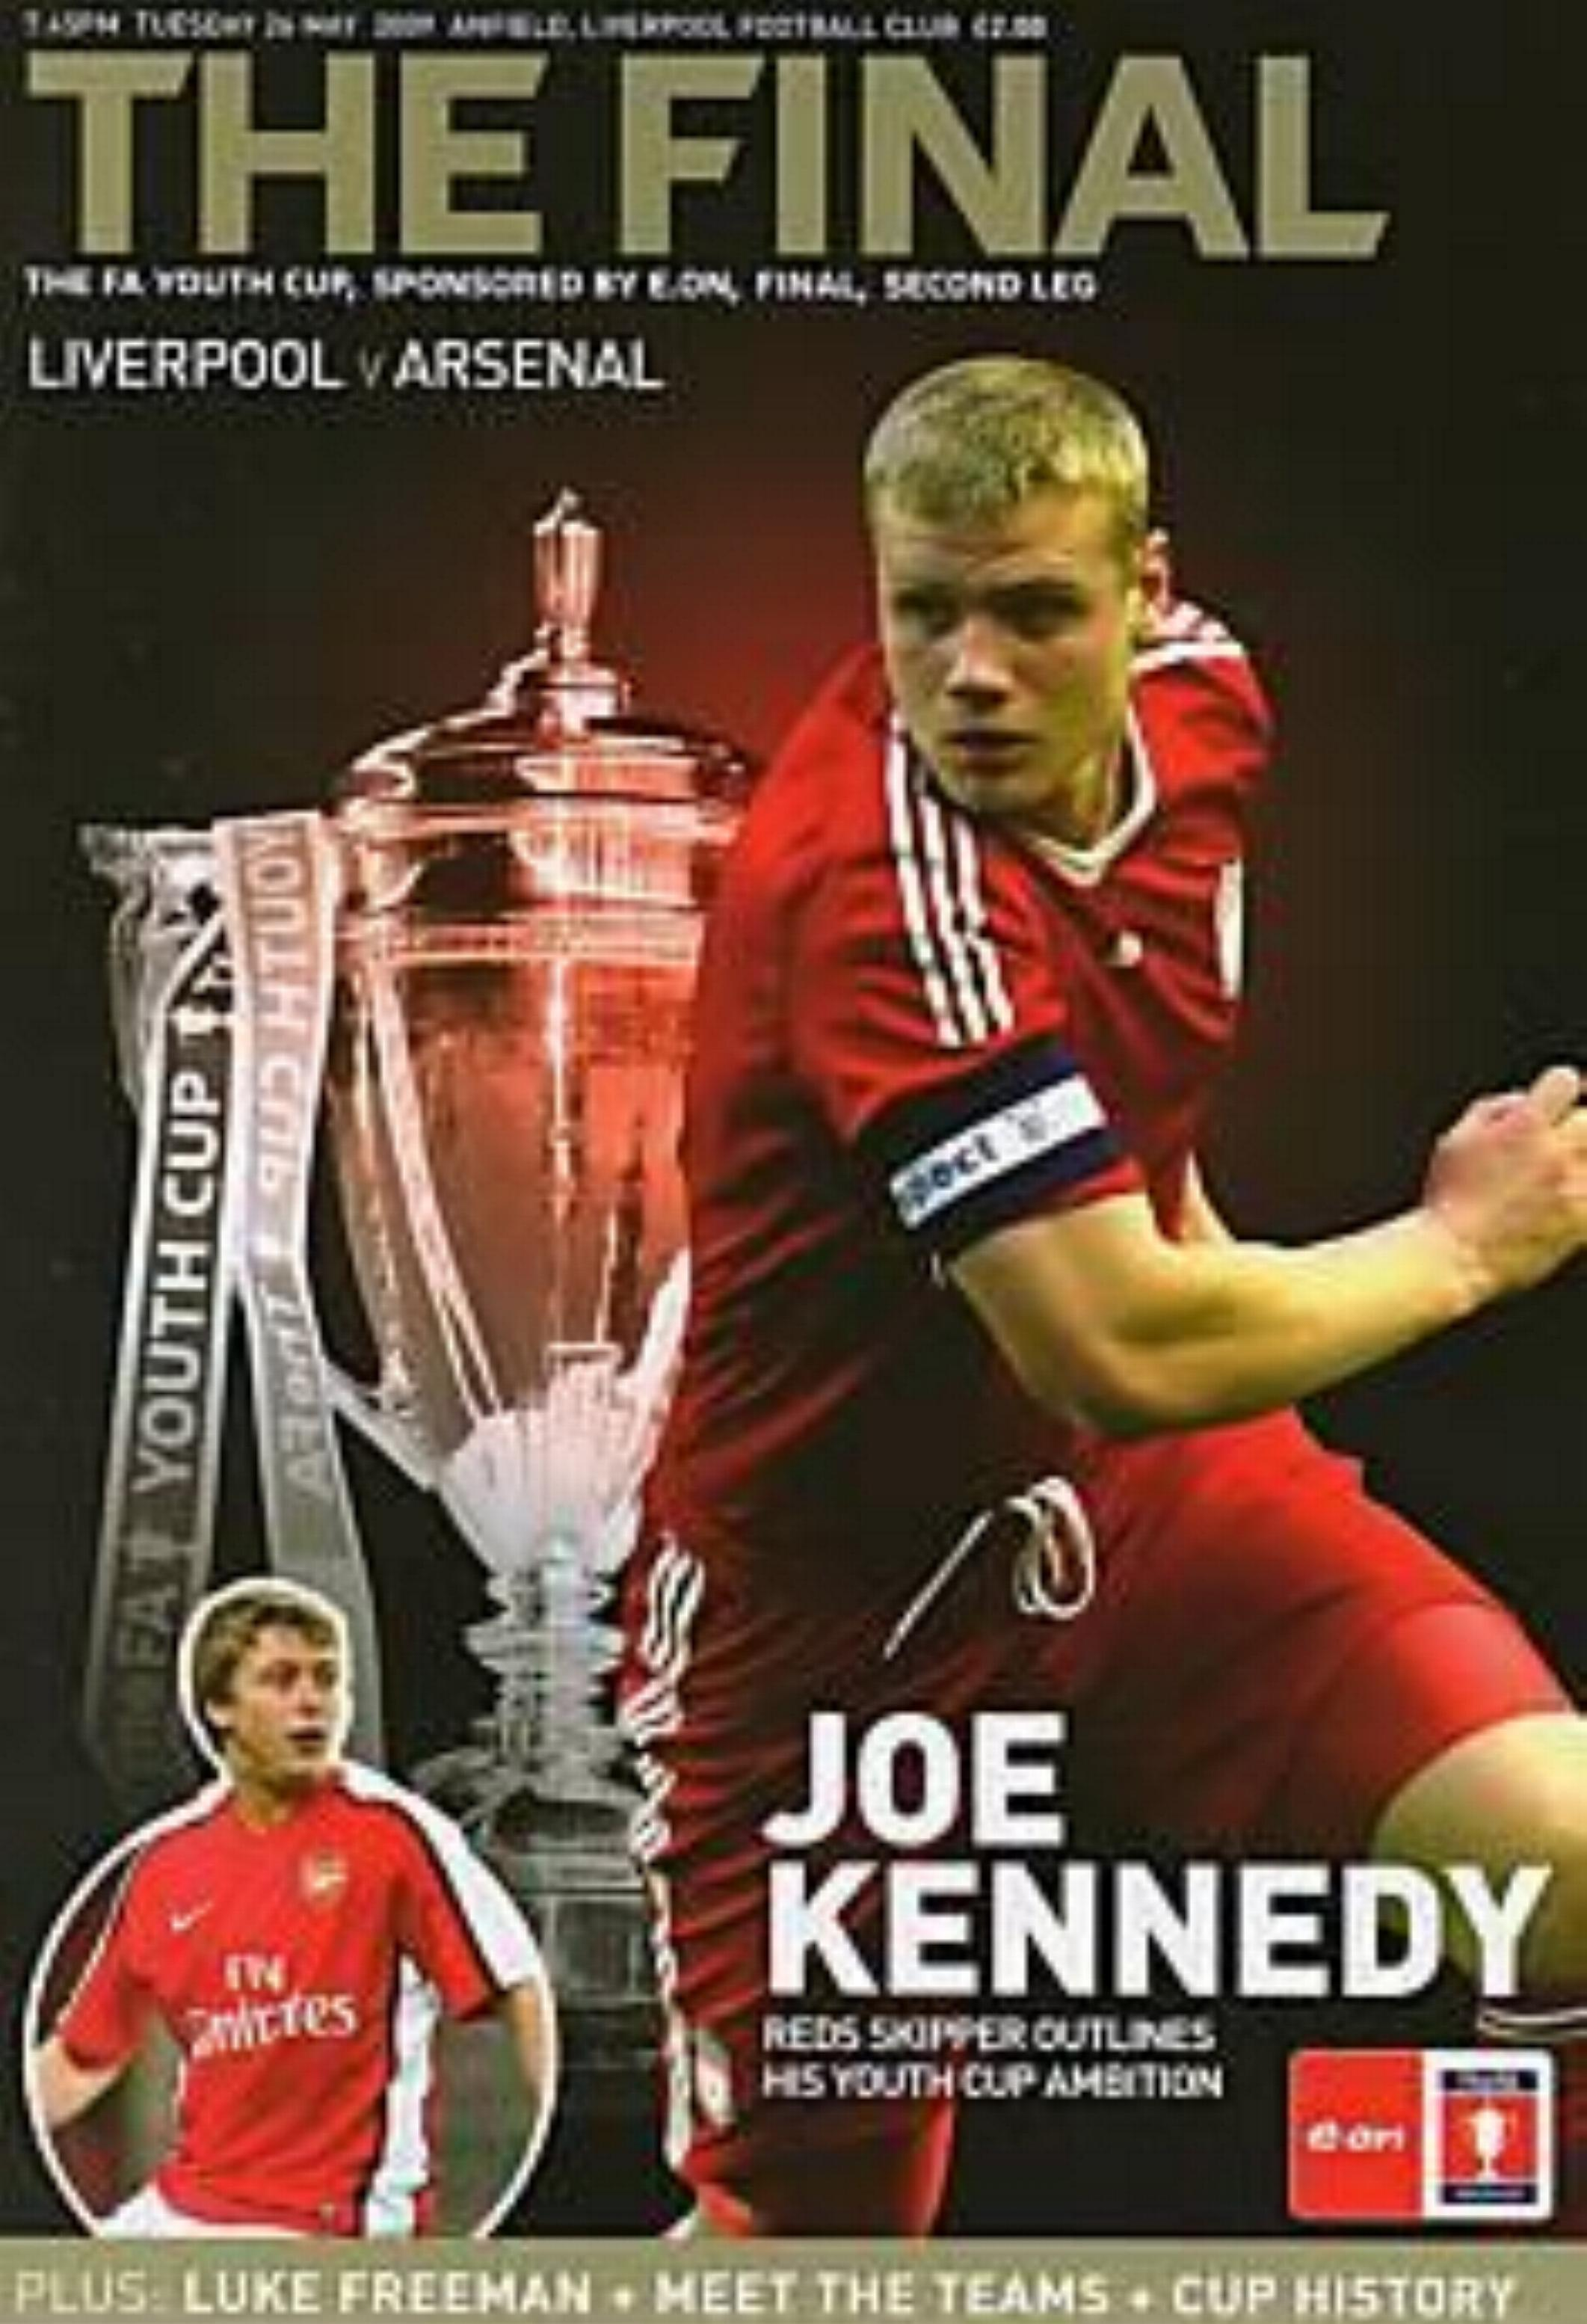 2009 FA YOUTH CUP FINAL (2nd LEG) - LIVERPOOL v ARSENAL